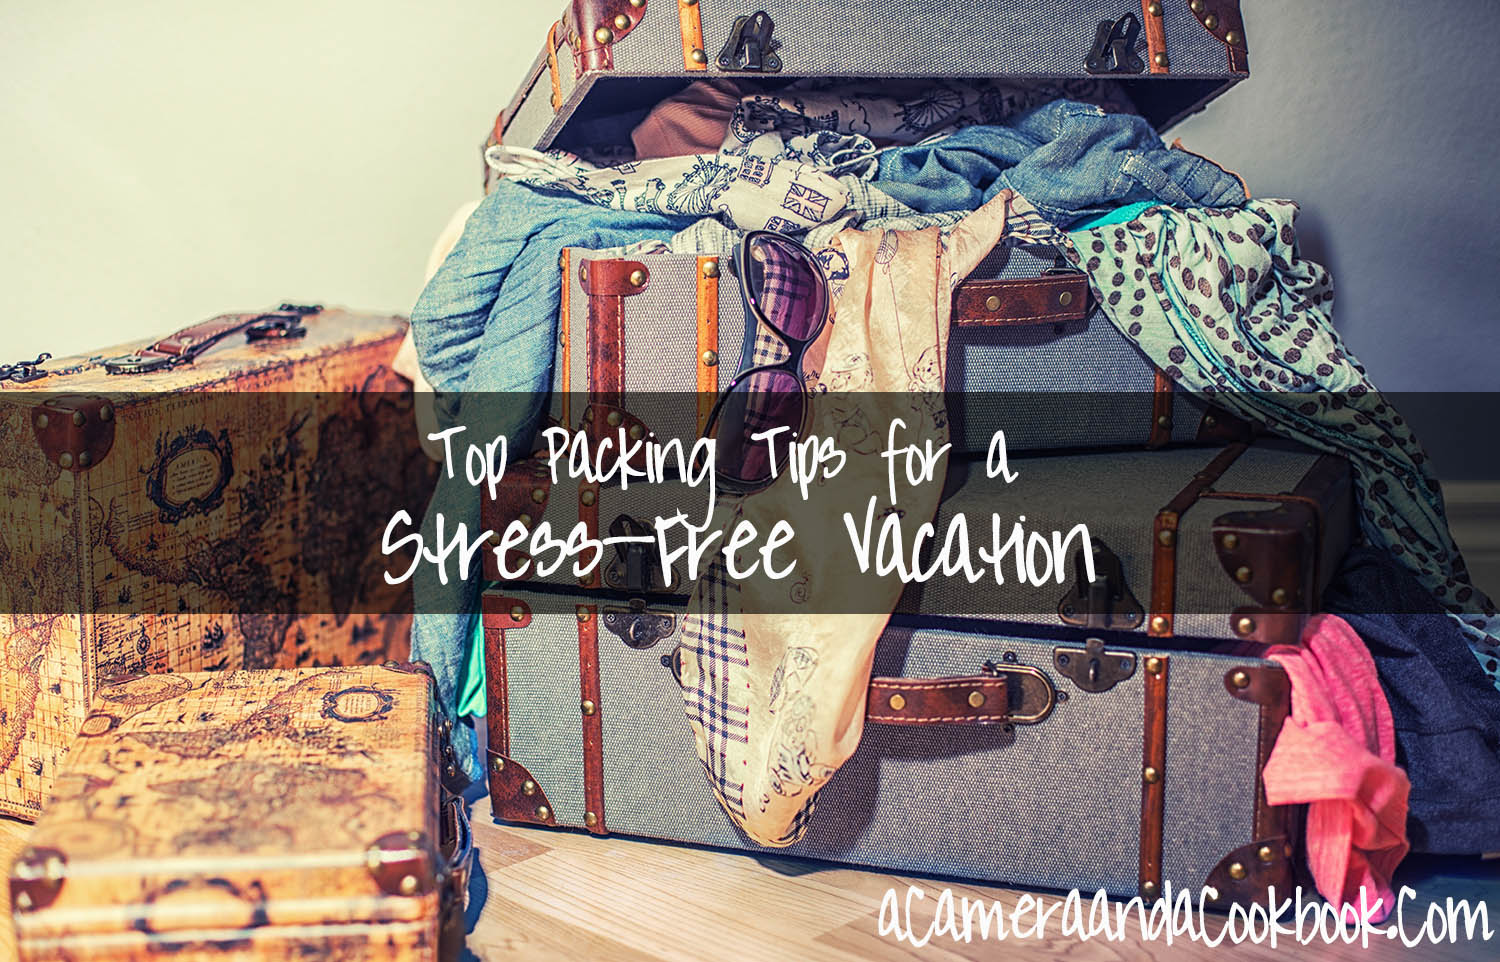 HTop Packing Tips for a Stress-Free Vacation